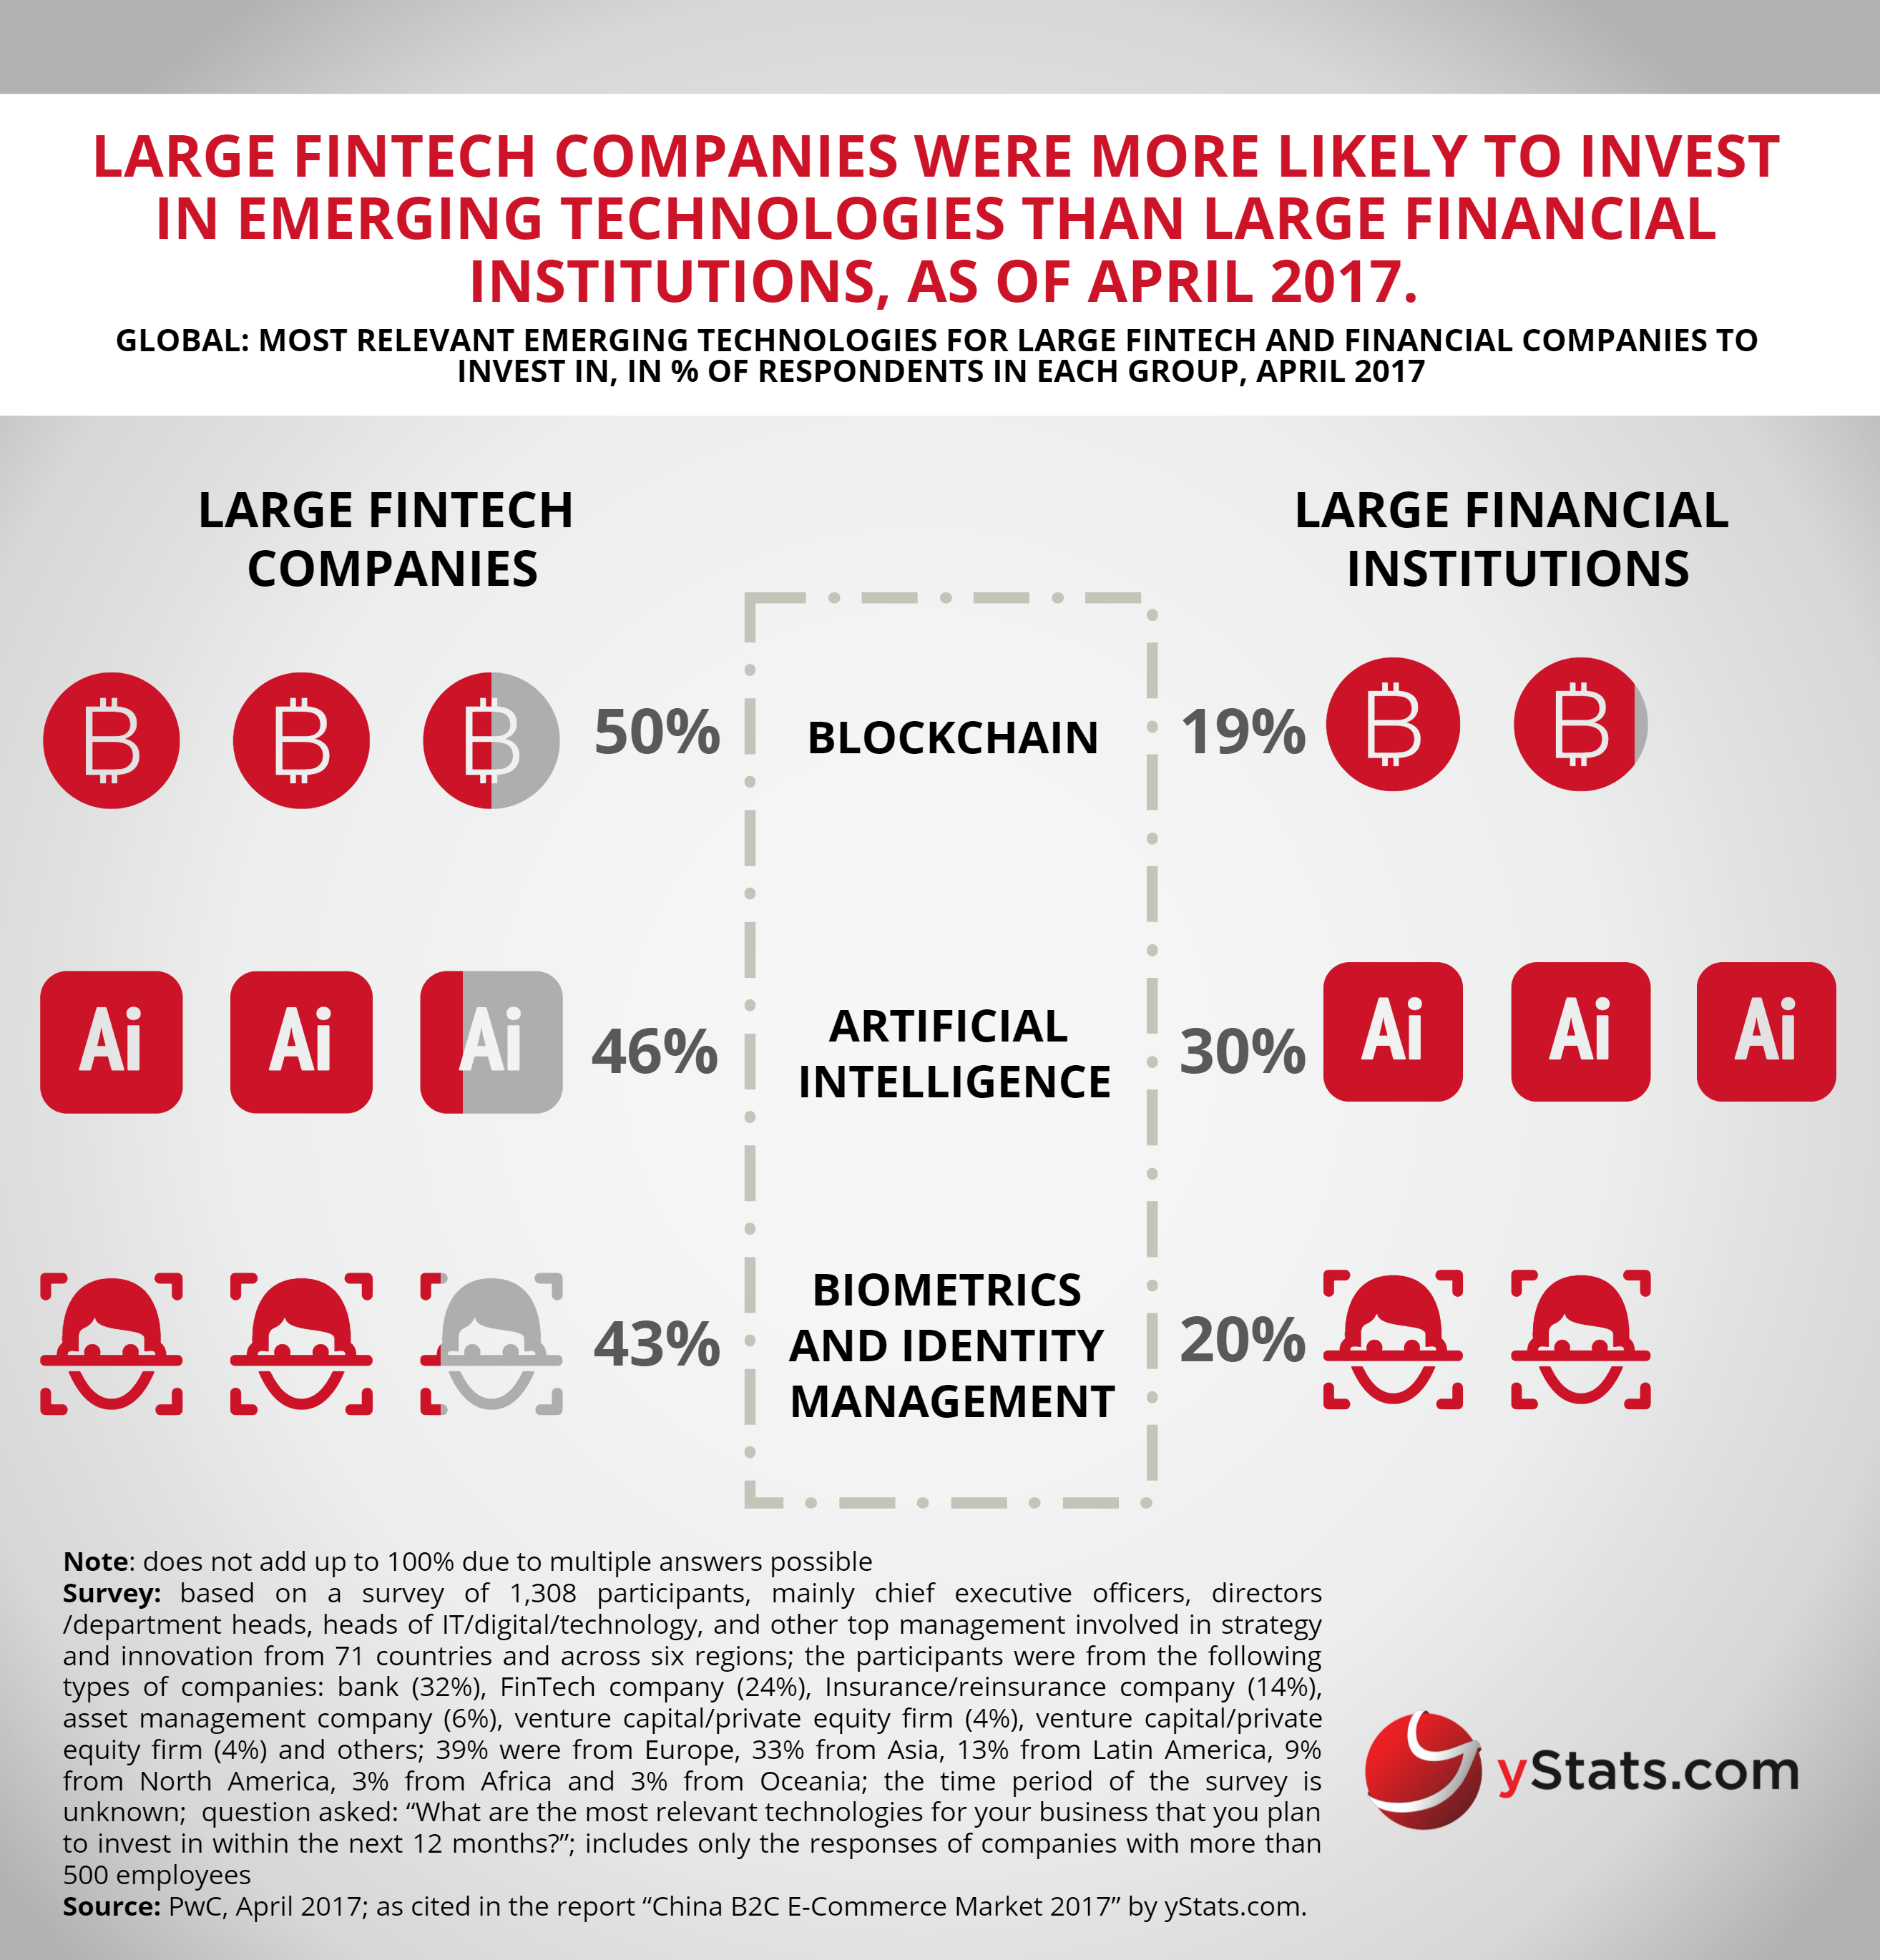 relevant technologies for large fintech and financial companies